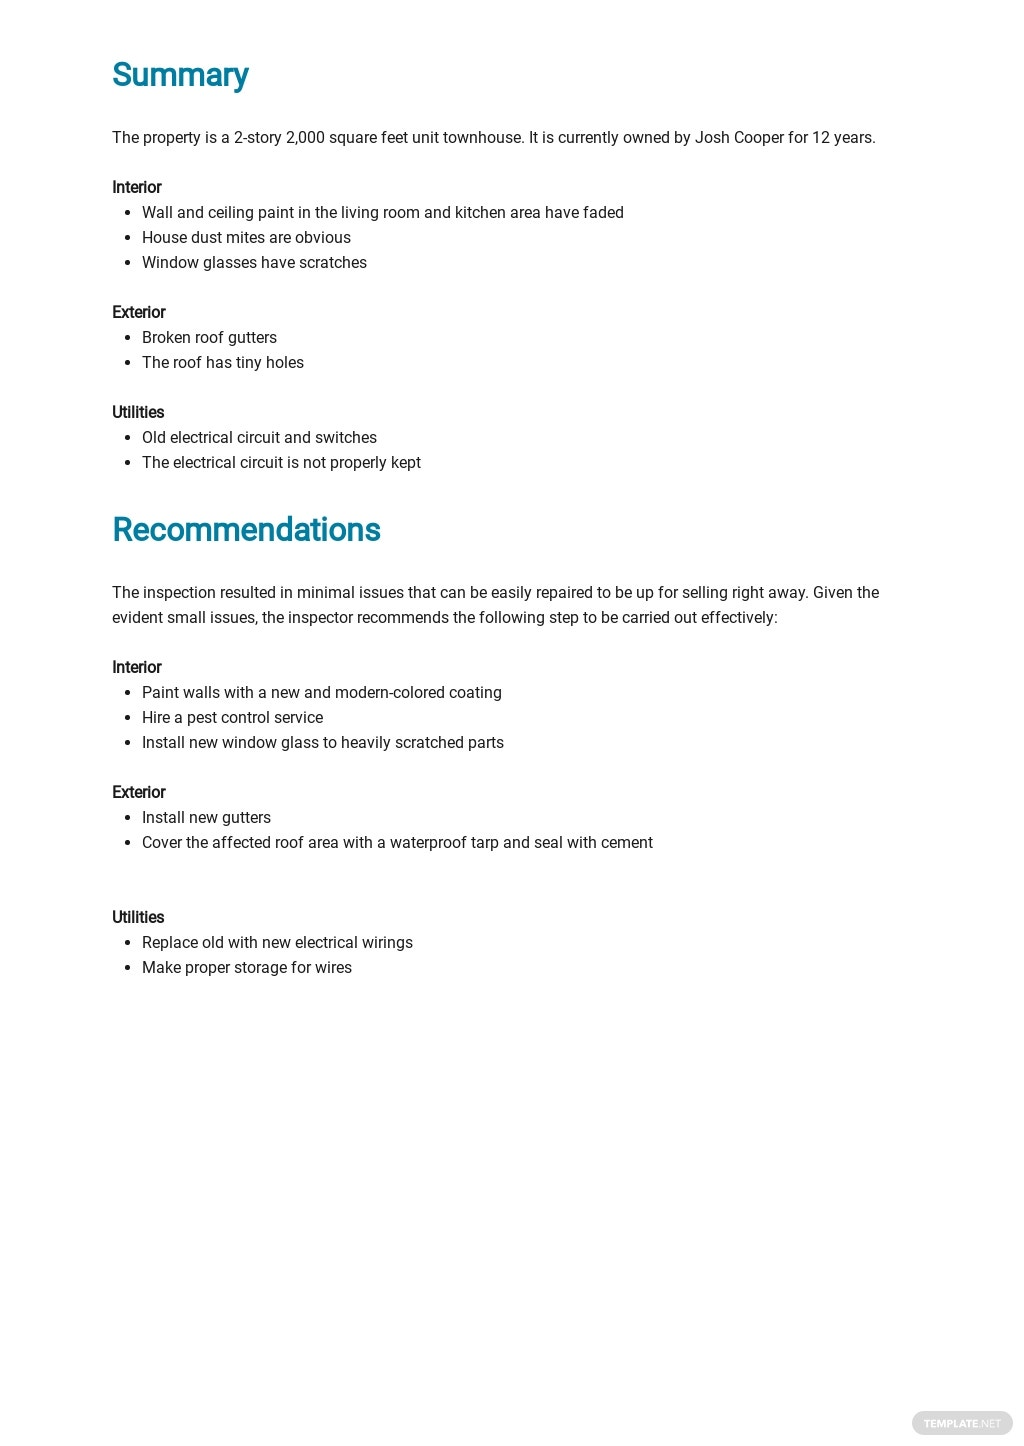 Home Inspection Report Template 2.jpe